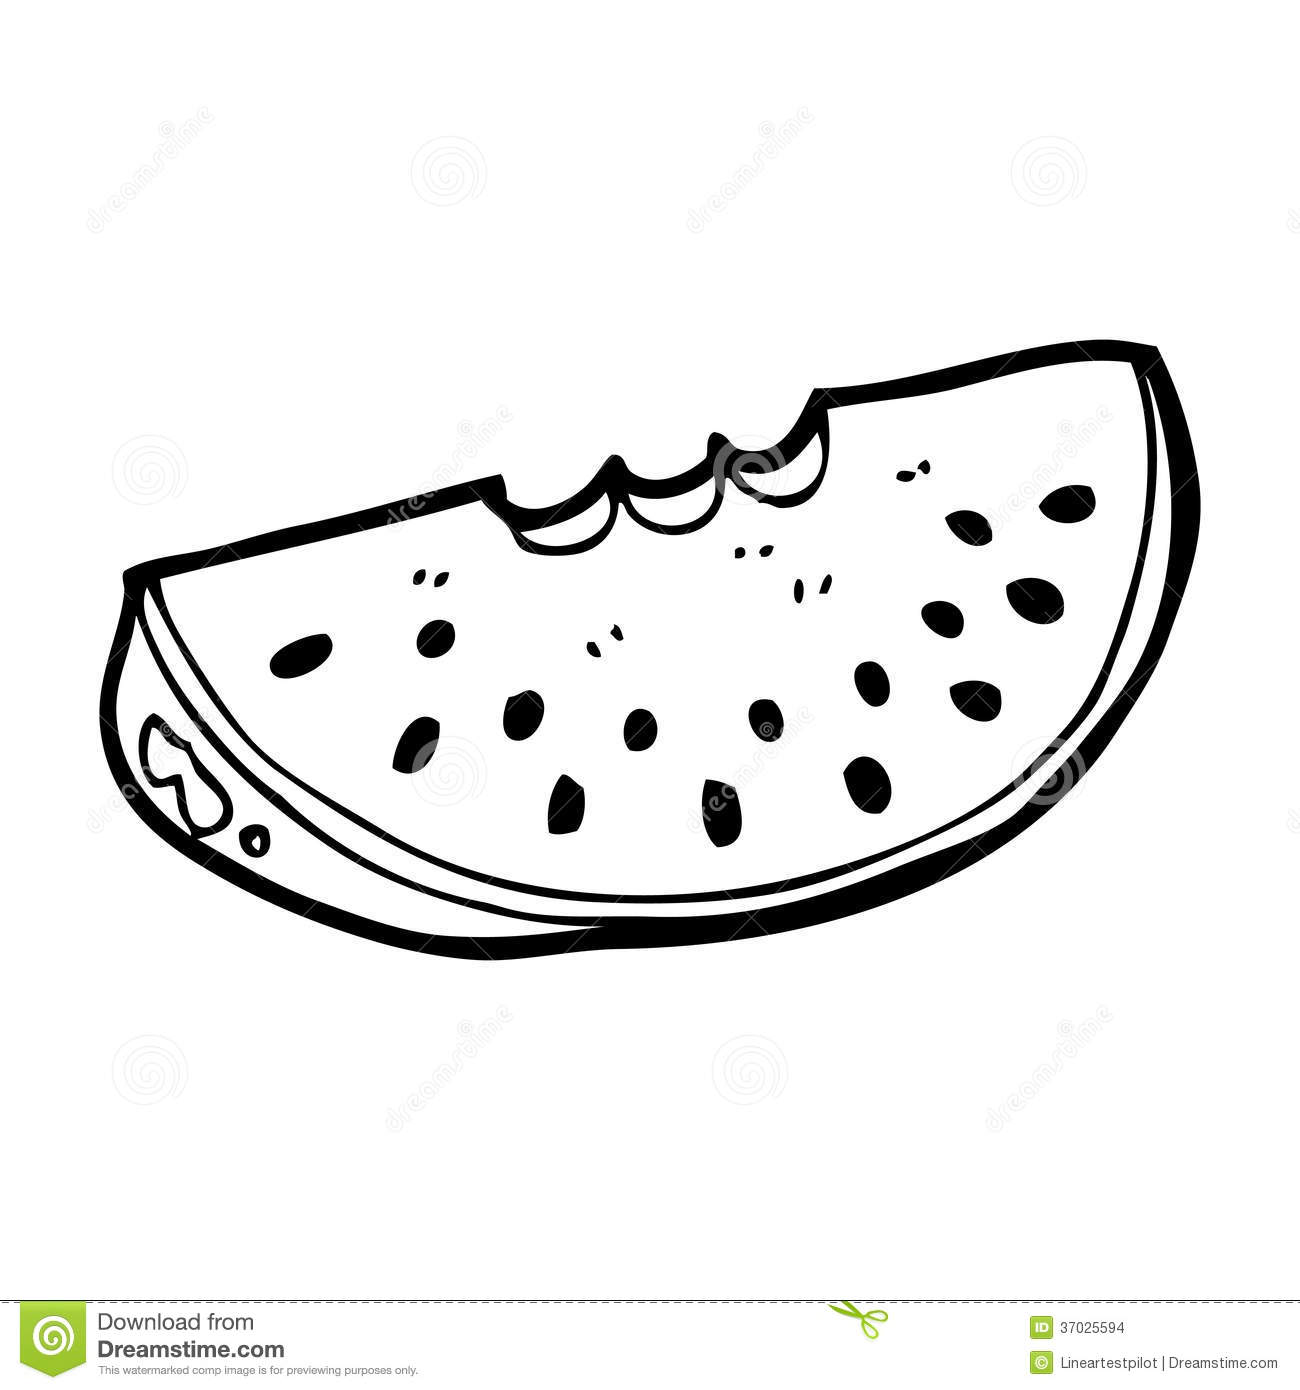 Watermelon Slice Black And White Images   Pictures   Becuo